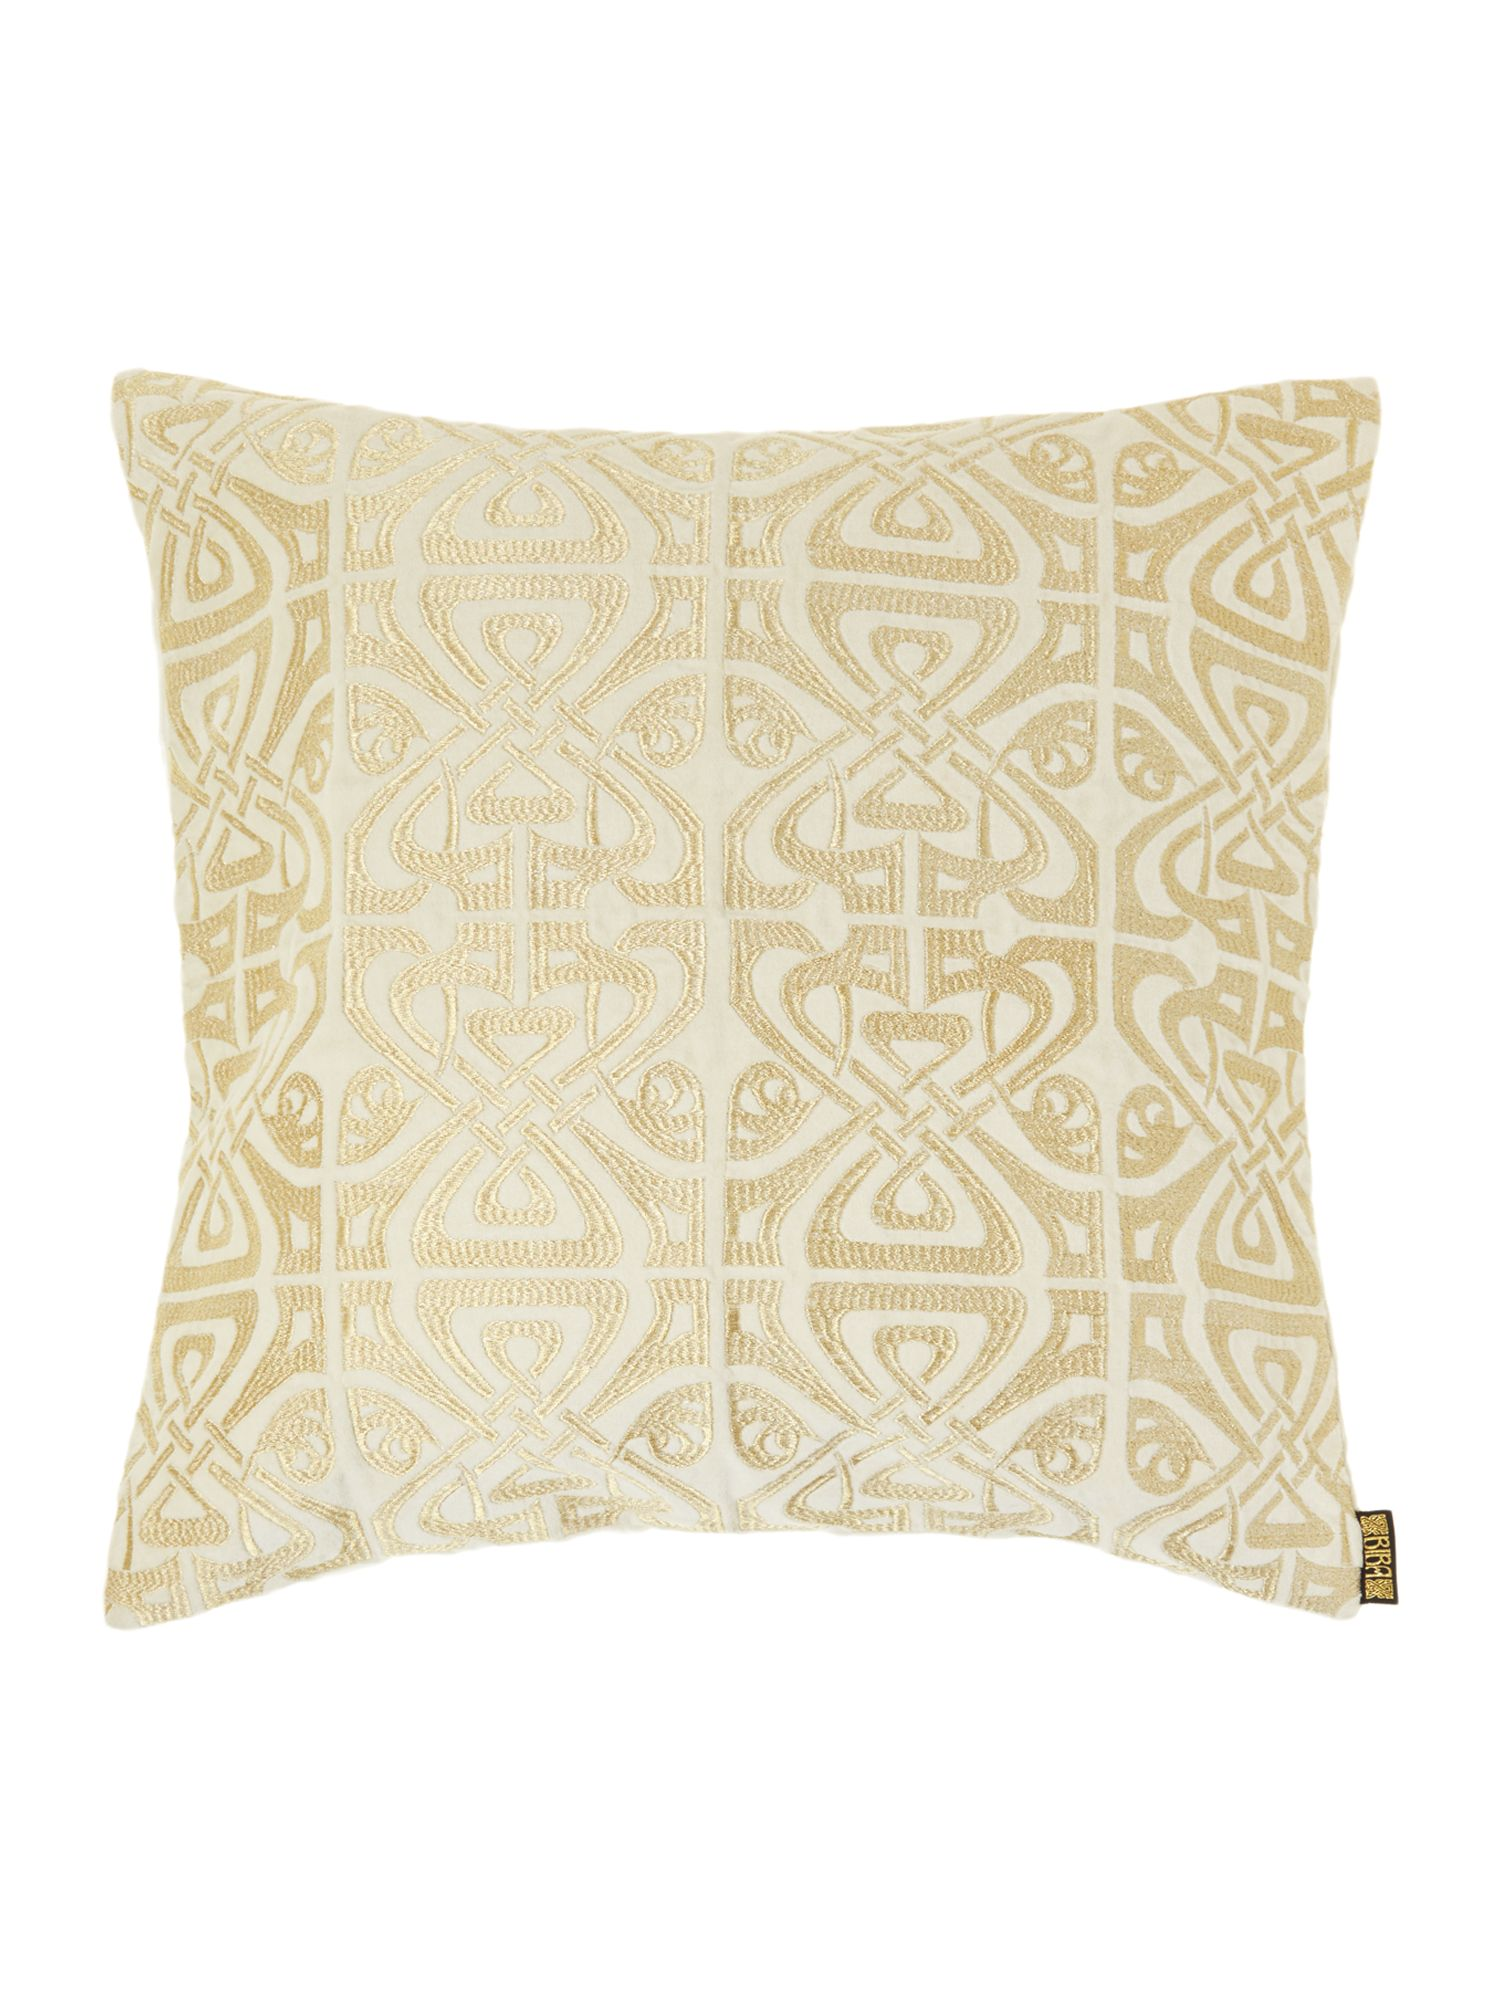 biba black velvet biba design cushion. Black Bedroom Furniture Sets. Home Design Ideas